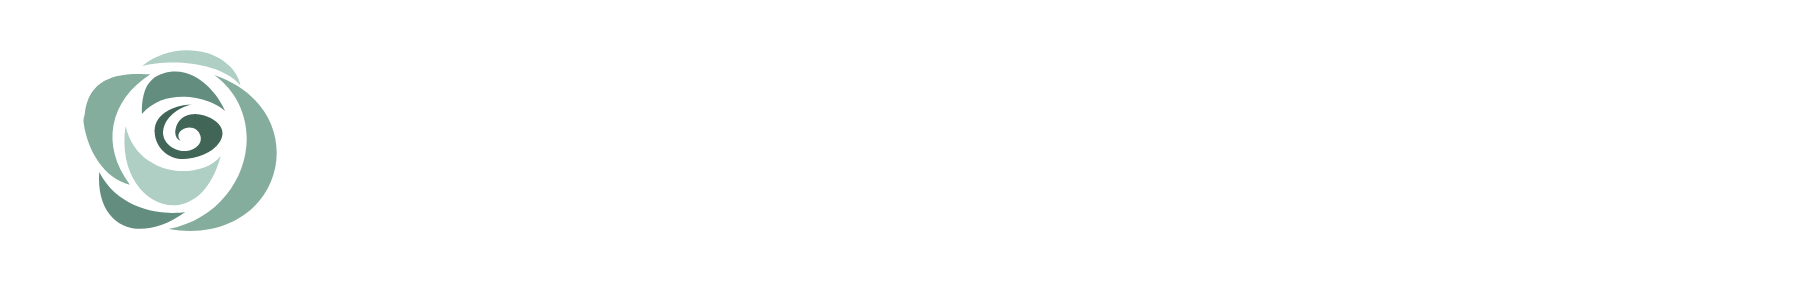 Jenny Rose Coaching & Consulting